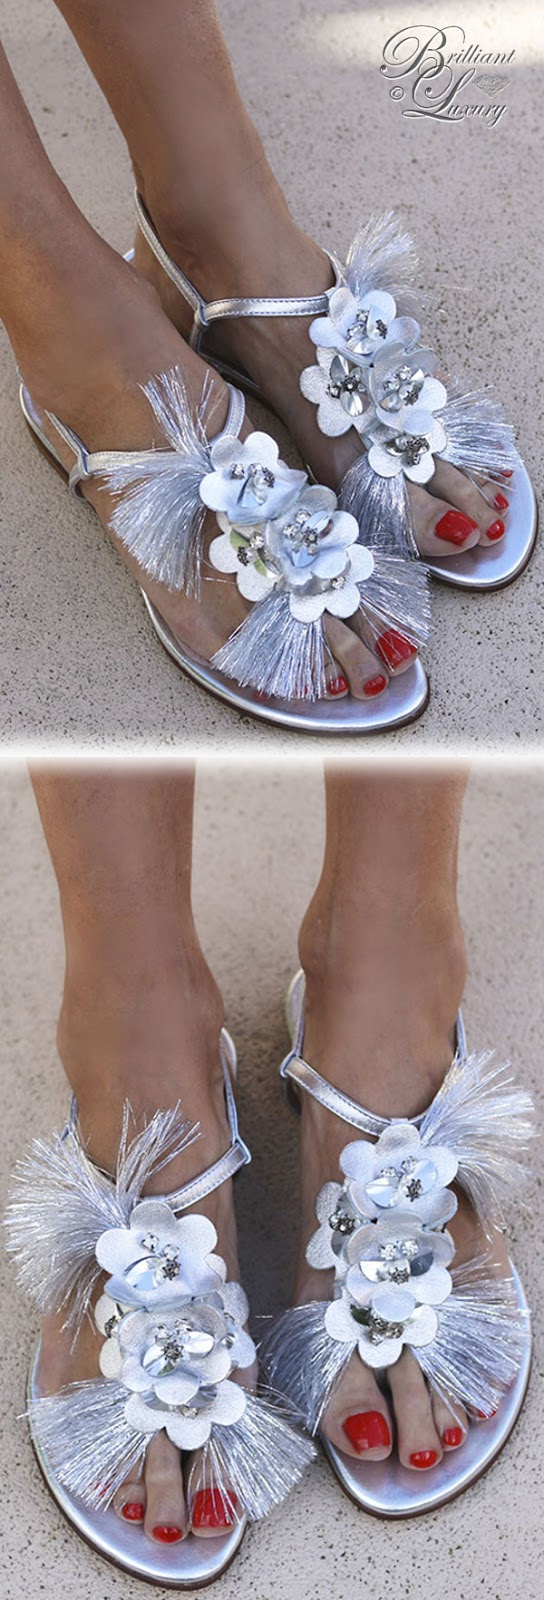 Brilliant Luxury ♦ Alameda Turquesa Lily sandals silver